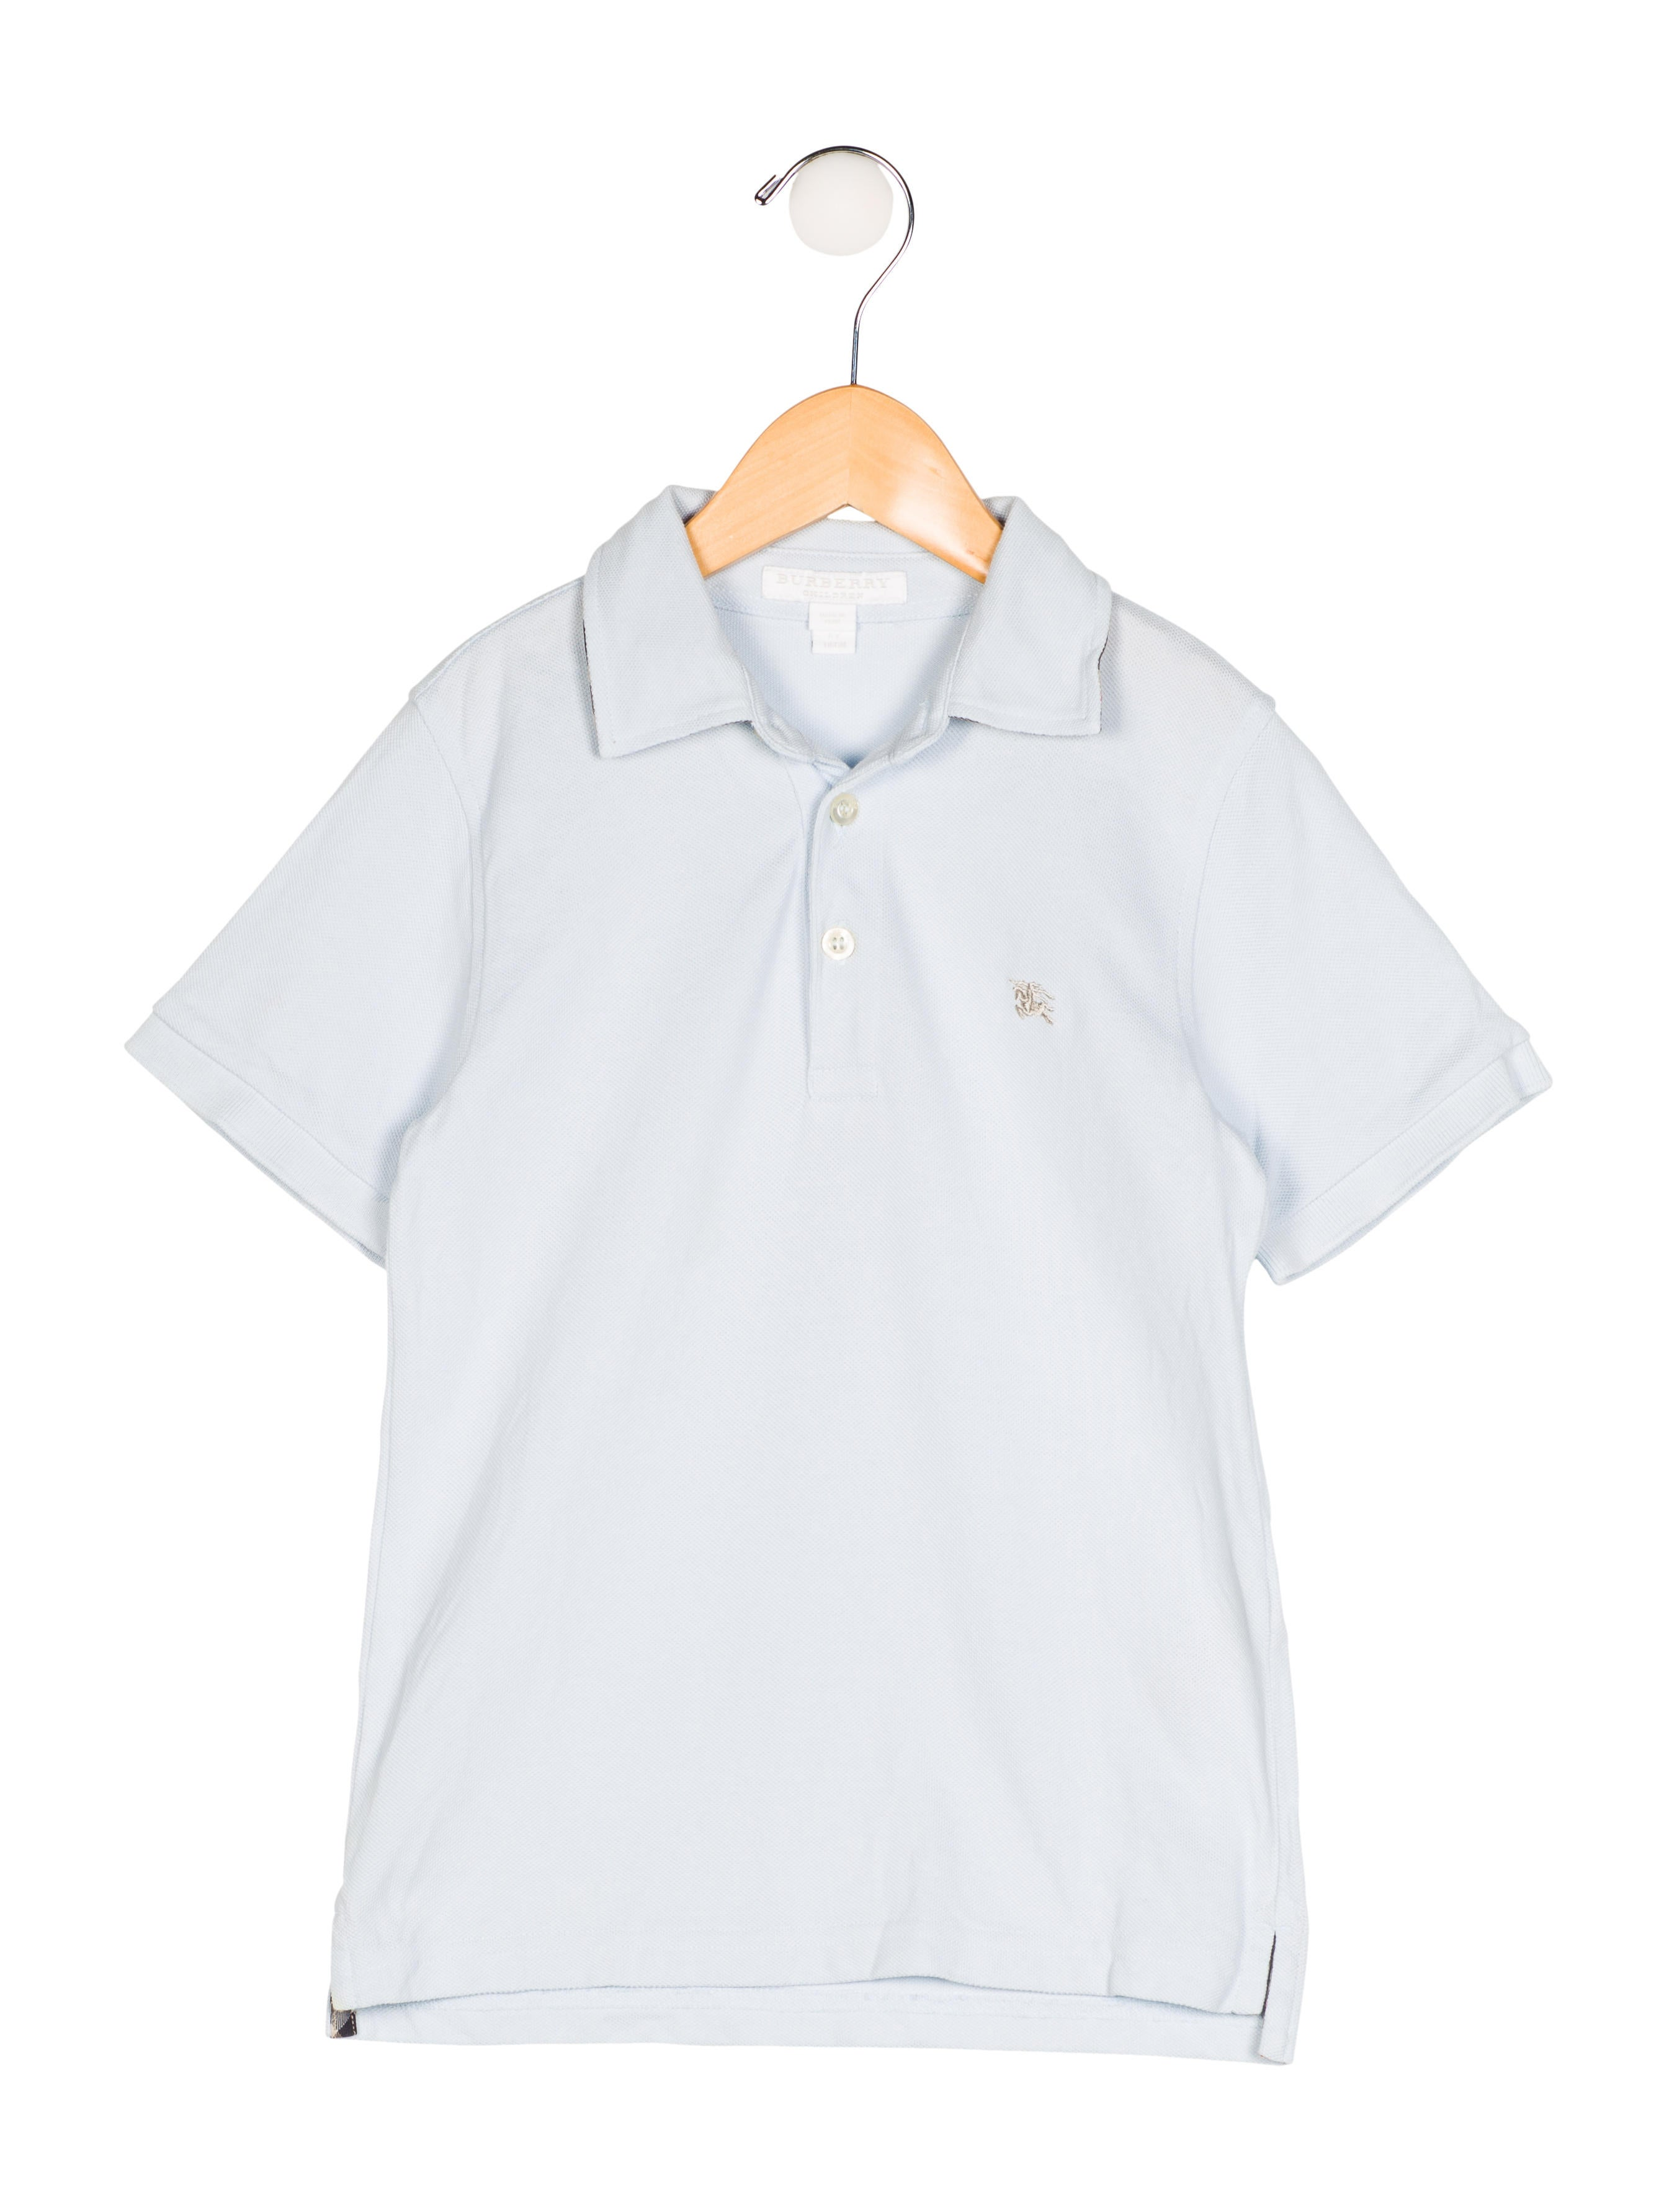 Dress him in classic style with boys' dress shirts and button down shirts from vineyard vines. Free shipping available on $+.